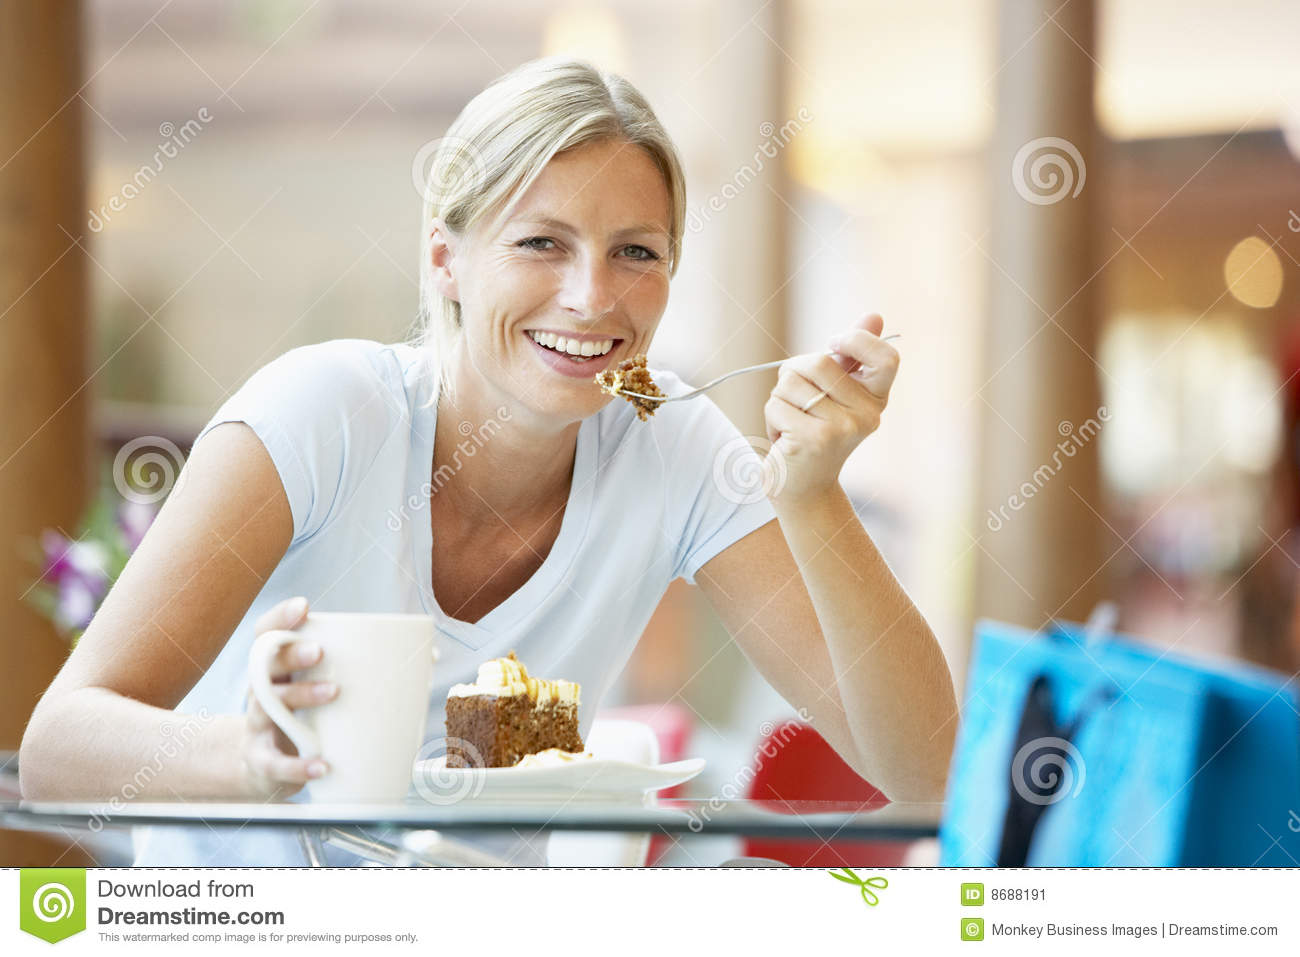 Cake eating mall piece woman